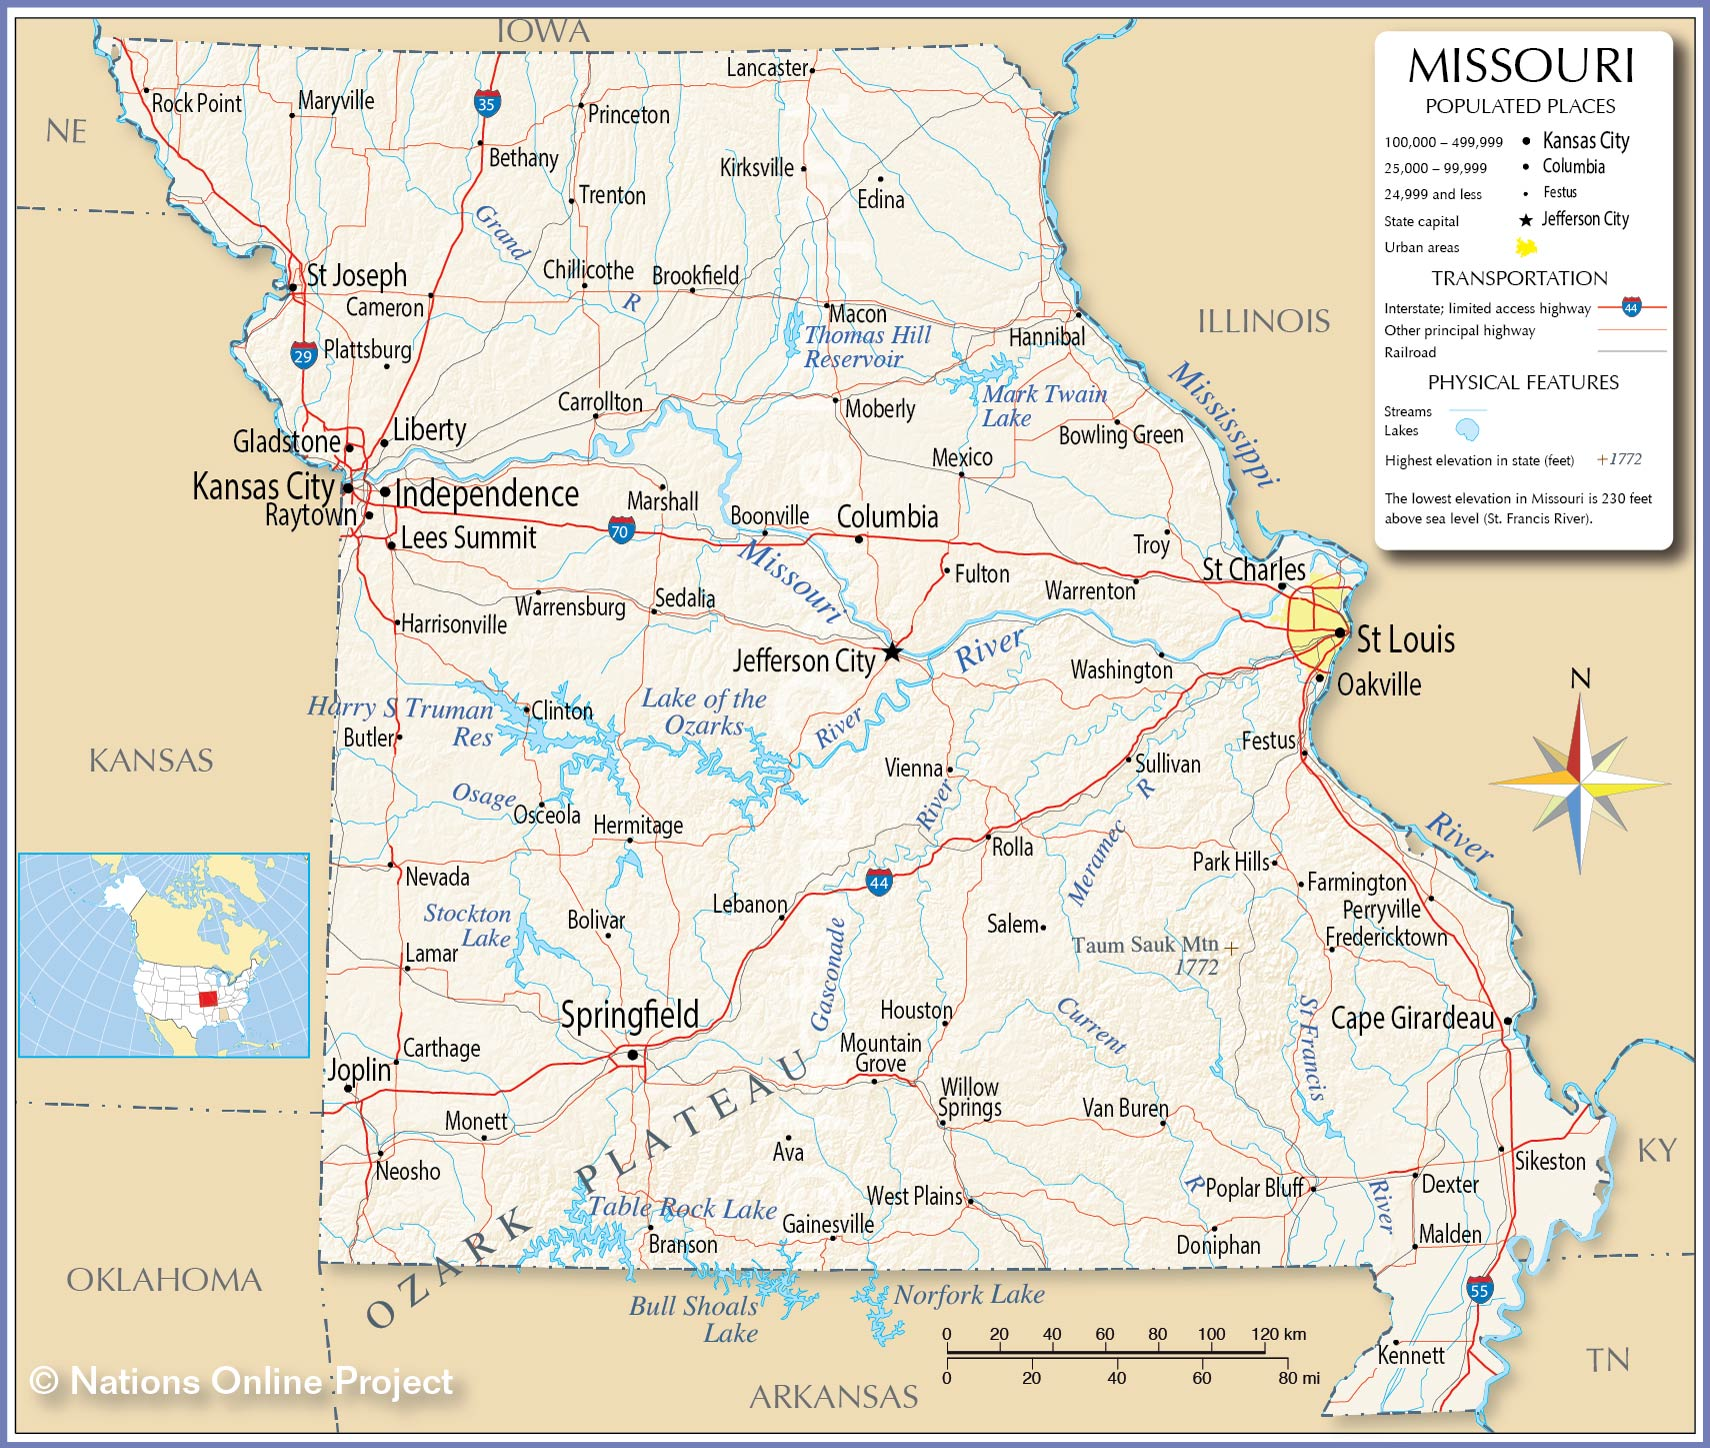 western states with mississippi river s with Missouri Map on South America Physical Map in addition 2010 Tennessee floods likewise New York Map Niagara Falls together with Interesting Facts About Missouri River also Morris.